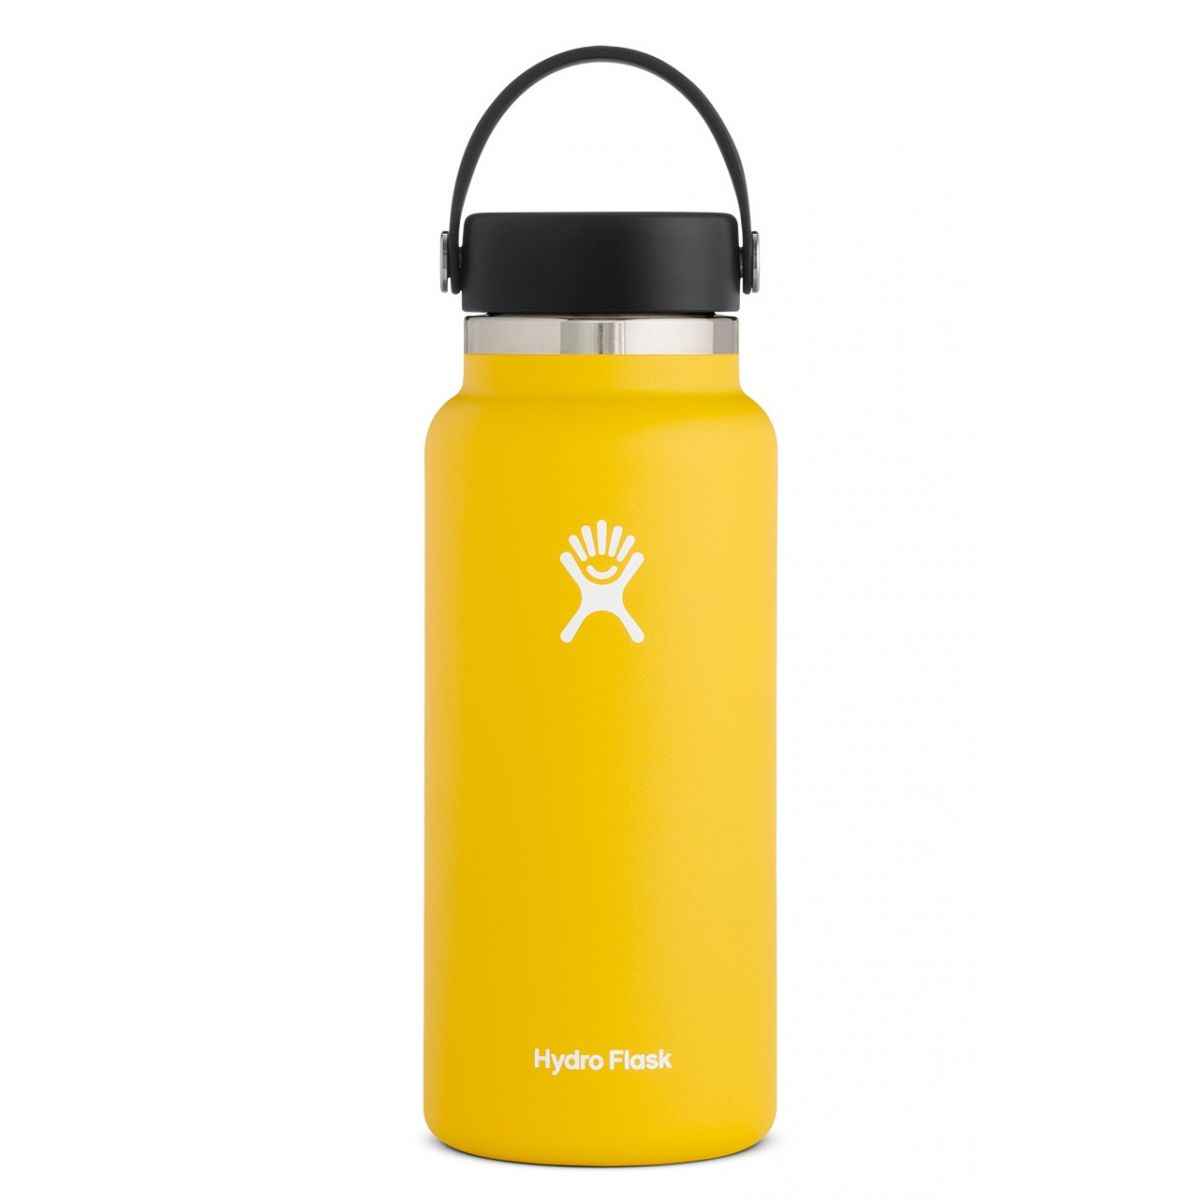 yellow water bottle with black lid and handle